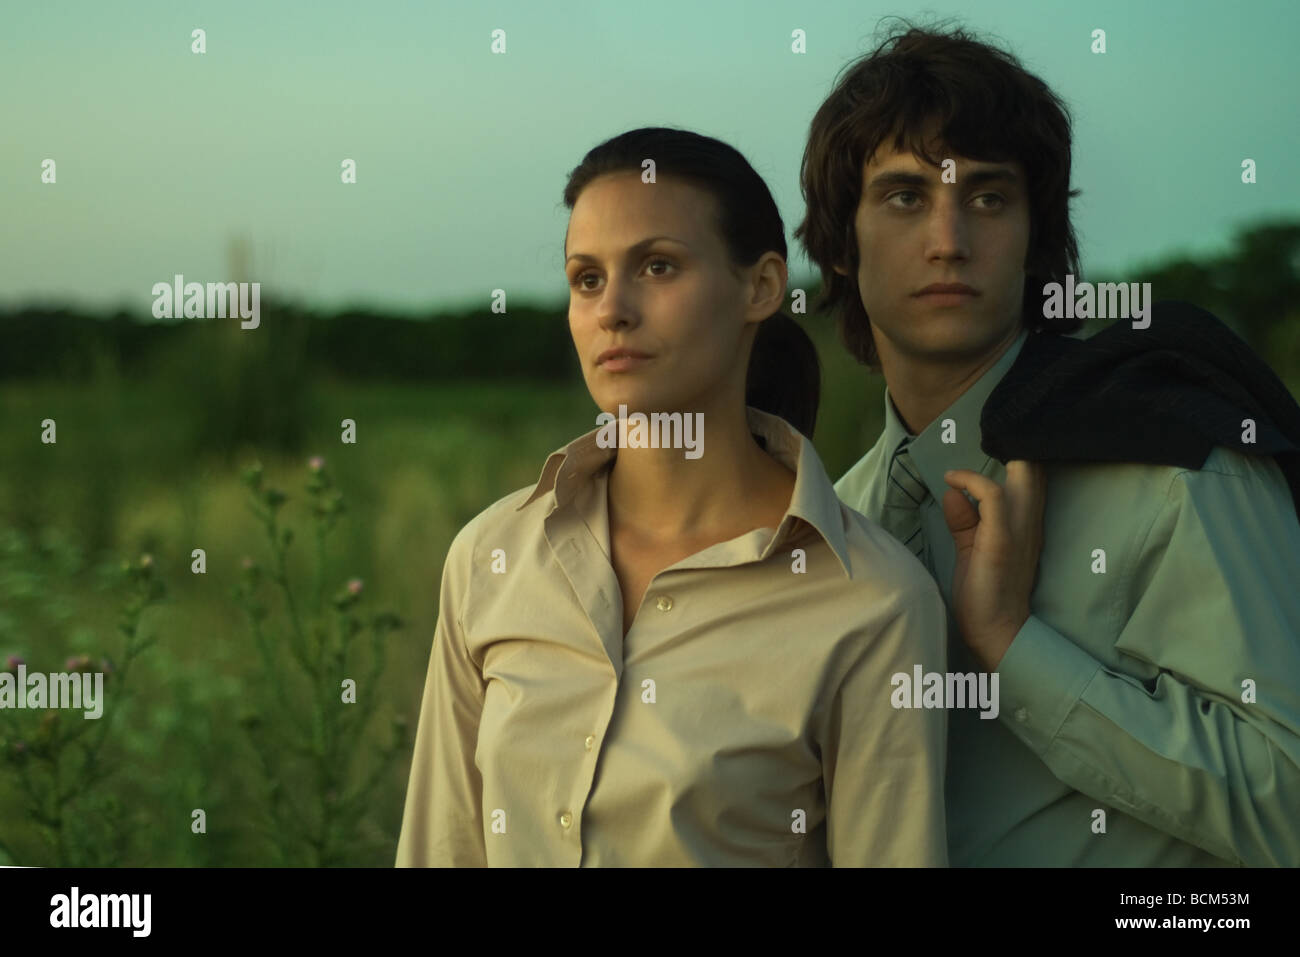 Couple standing together in field at dusk, close-up - Stock Image